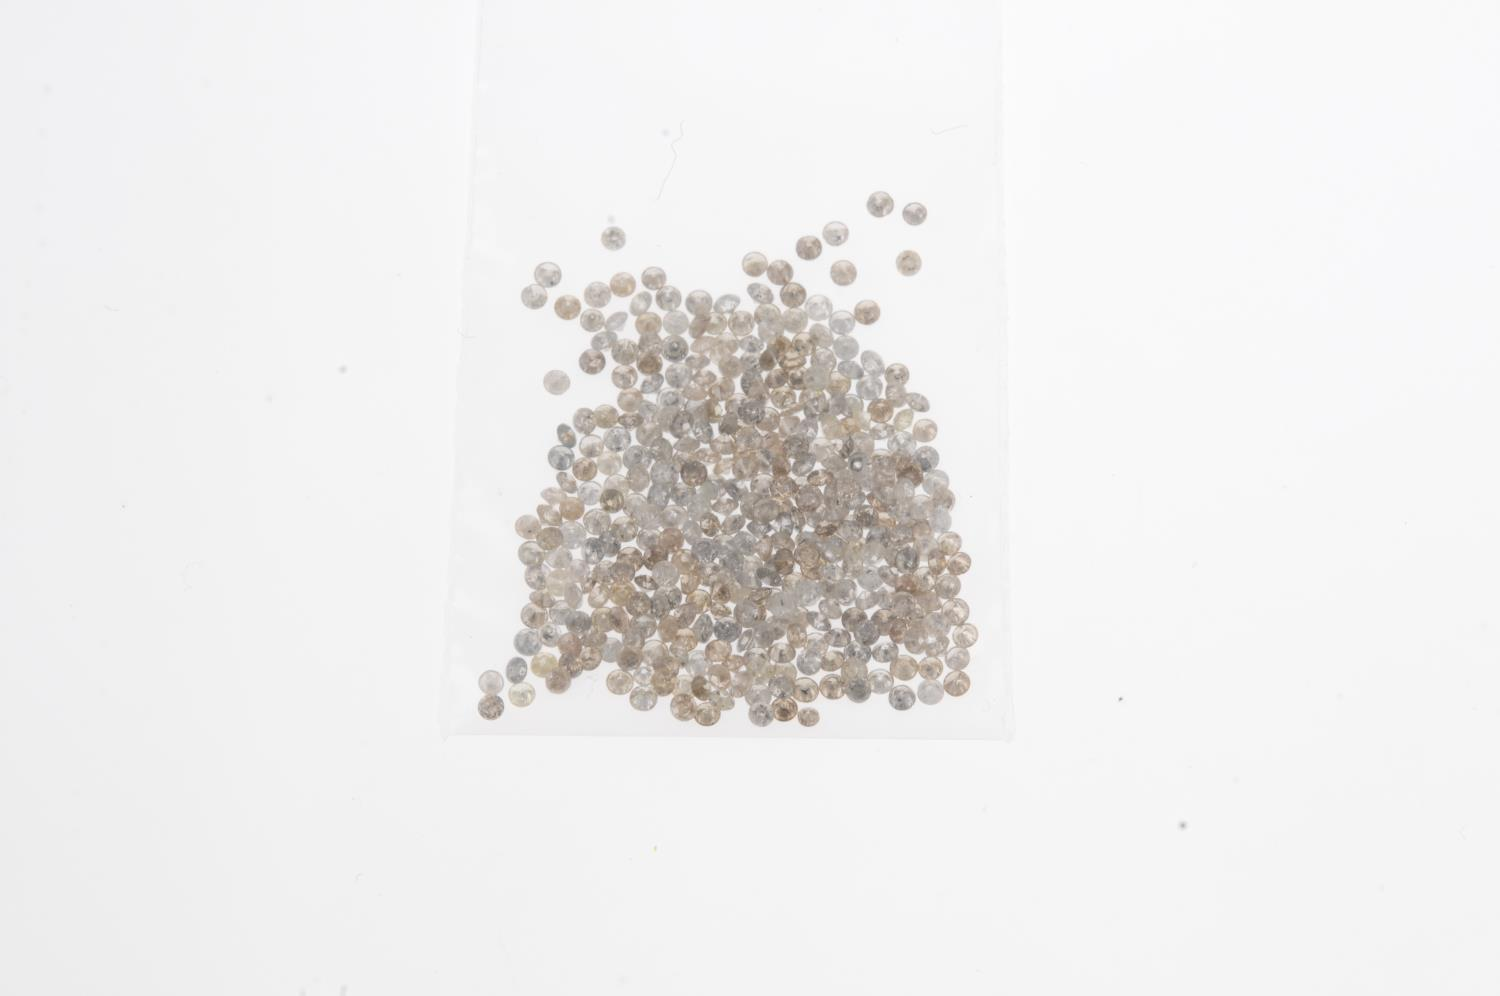 A small selection of round brilliant-cut melee and 'brown' melee diamonds. - Image 2 of 2